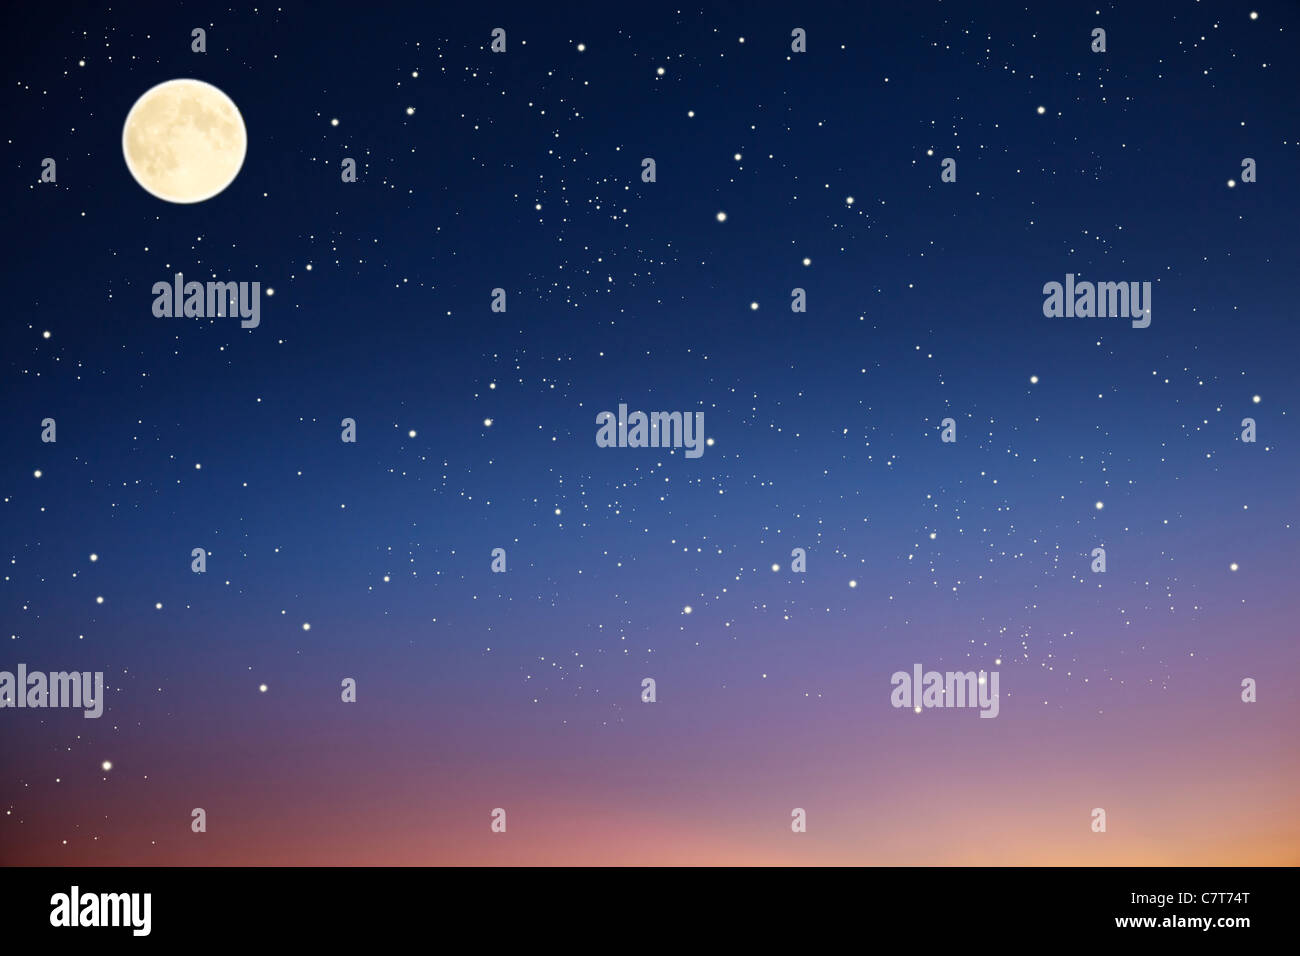 Night sky with moon and stars. Stock Photo